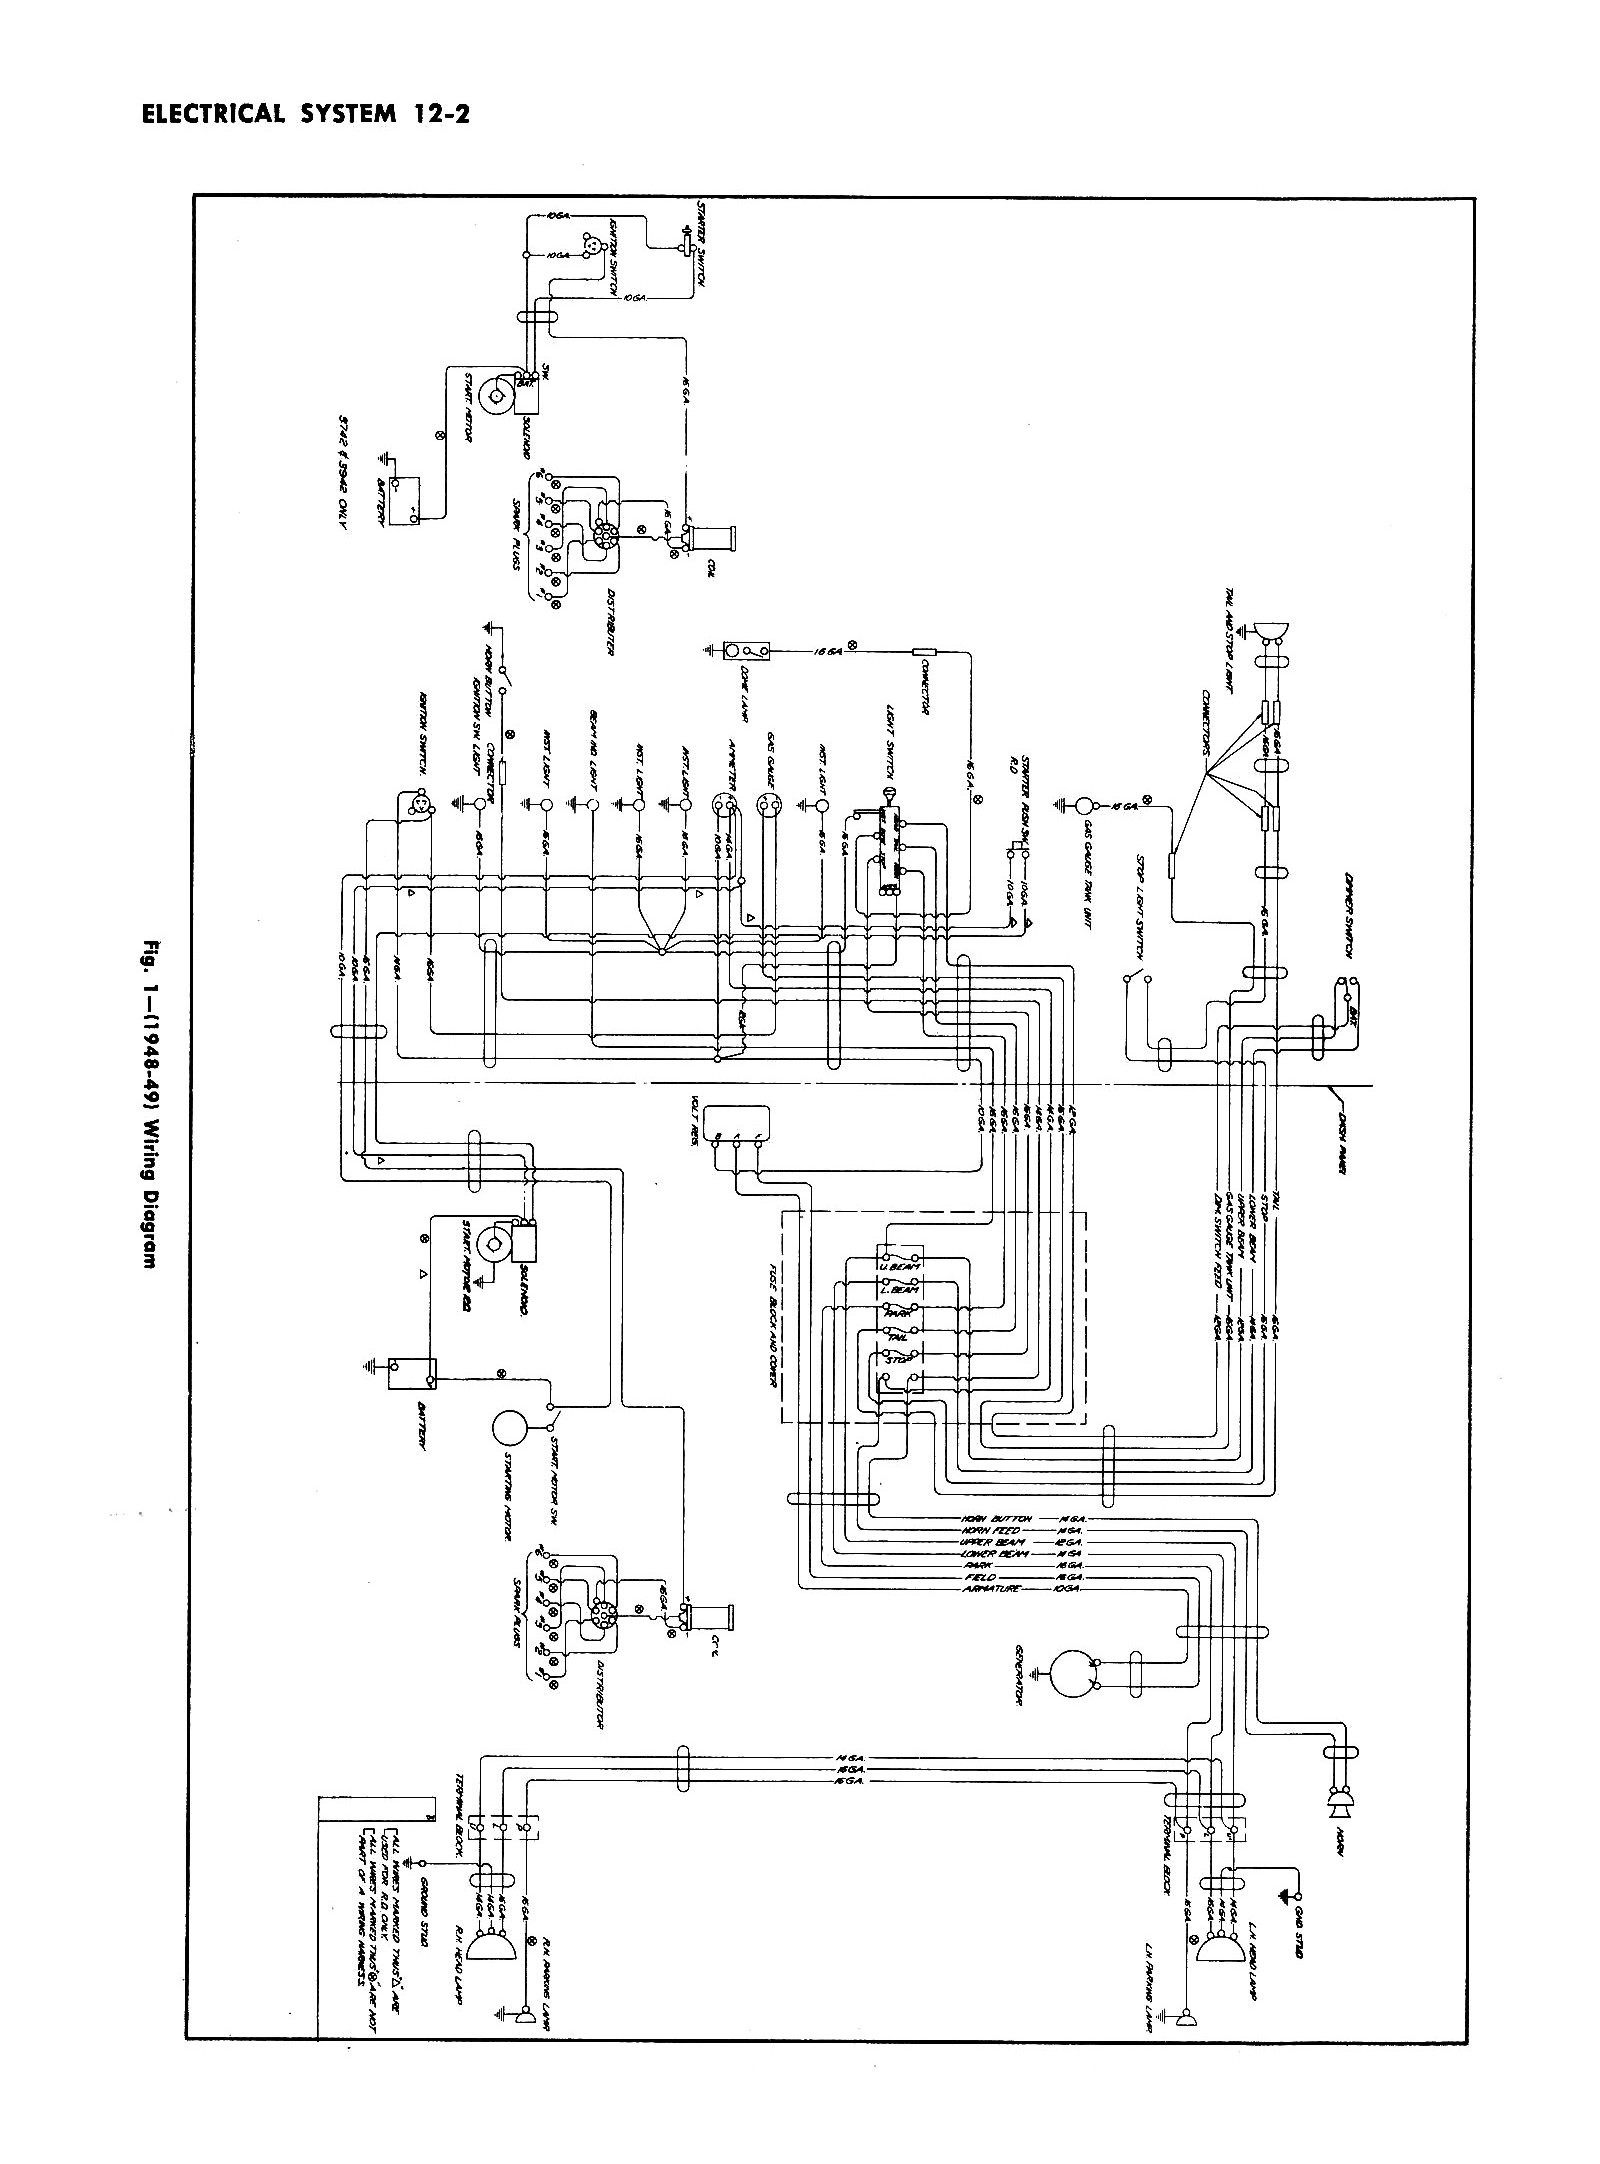 48car gmc ke switch wiring diagram wiring diagram simonand gm truck wiring harness at fashall.co